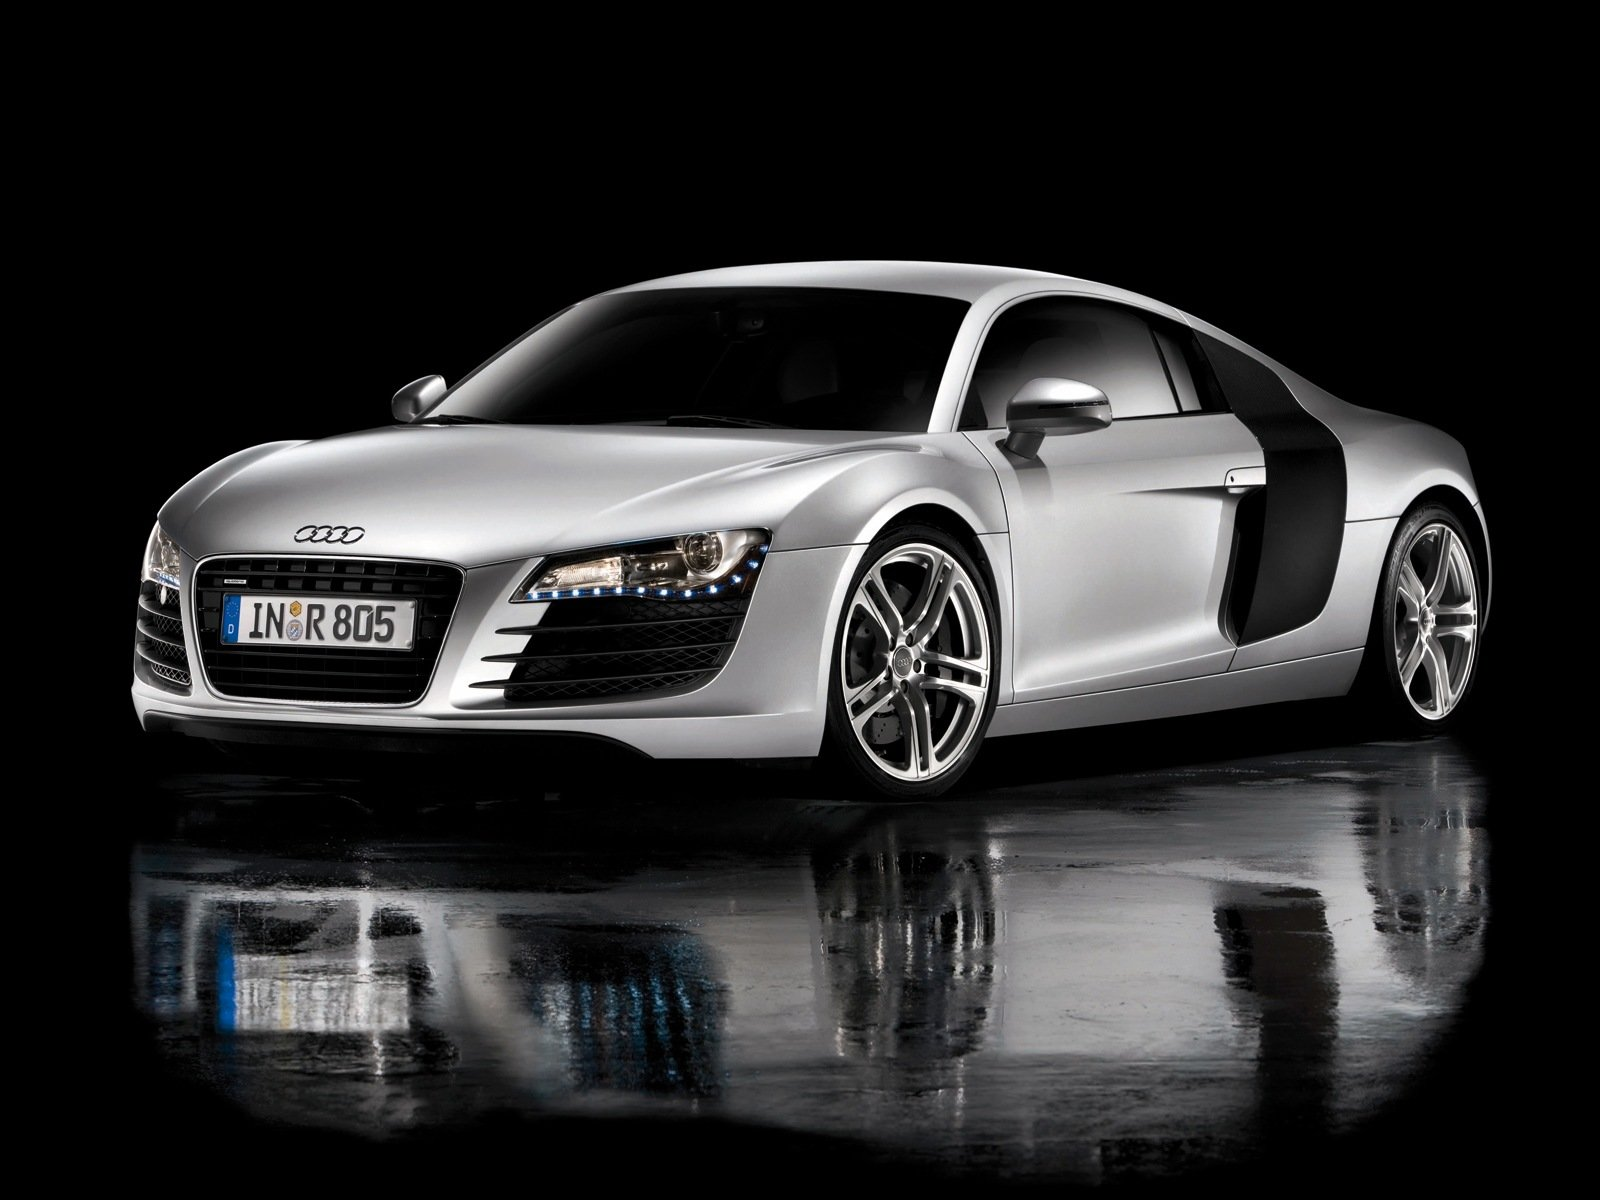 Latest New Car Photo Audi R8 Wallpaper Black Free Download